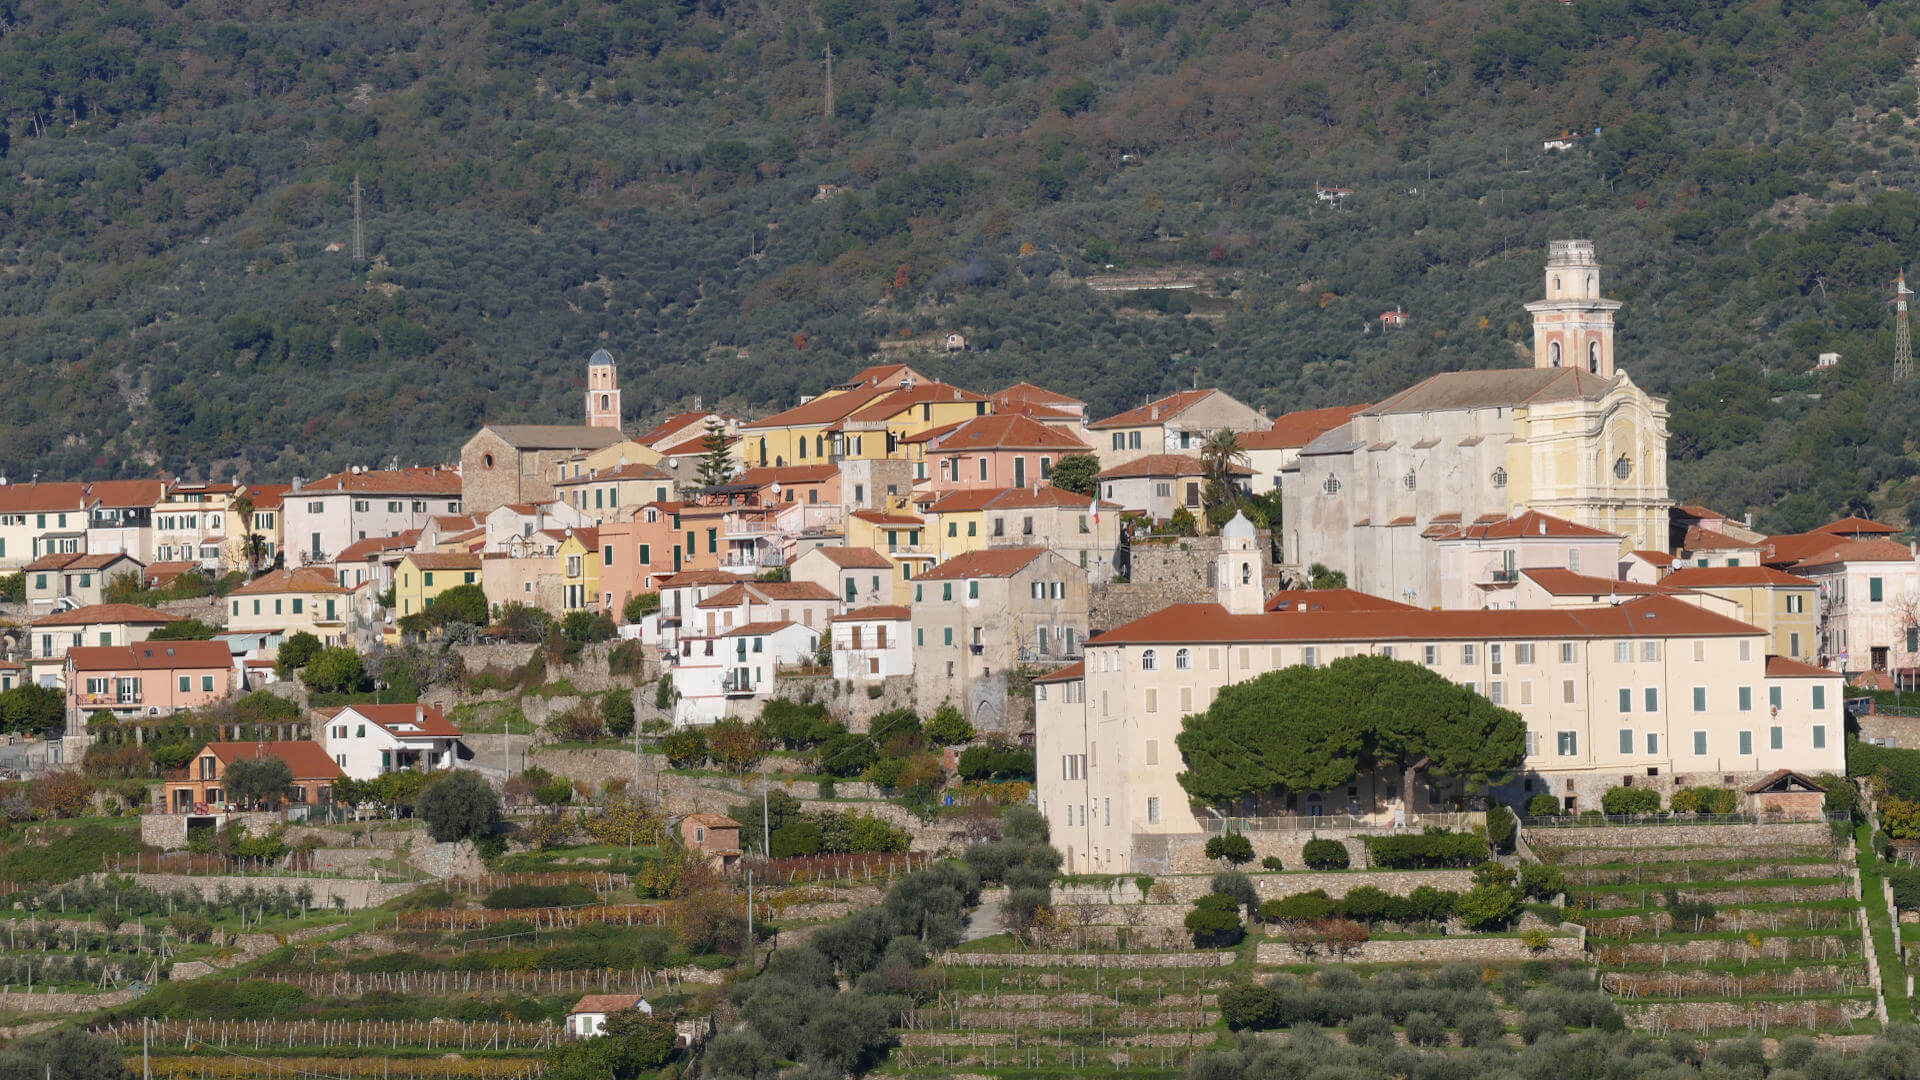 The Municipality of Diano Castello: a fortified village of ancient beauty